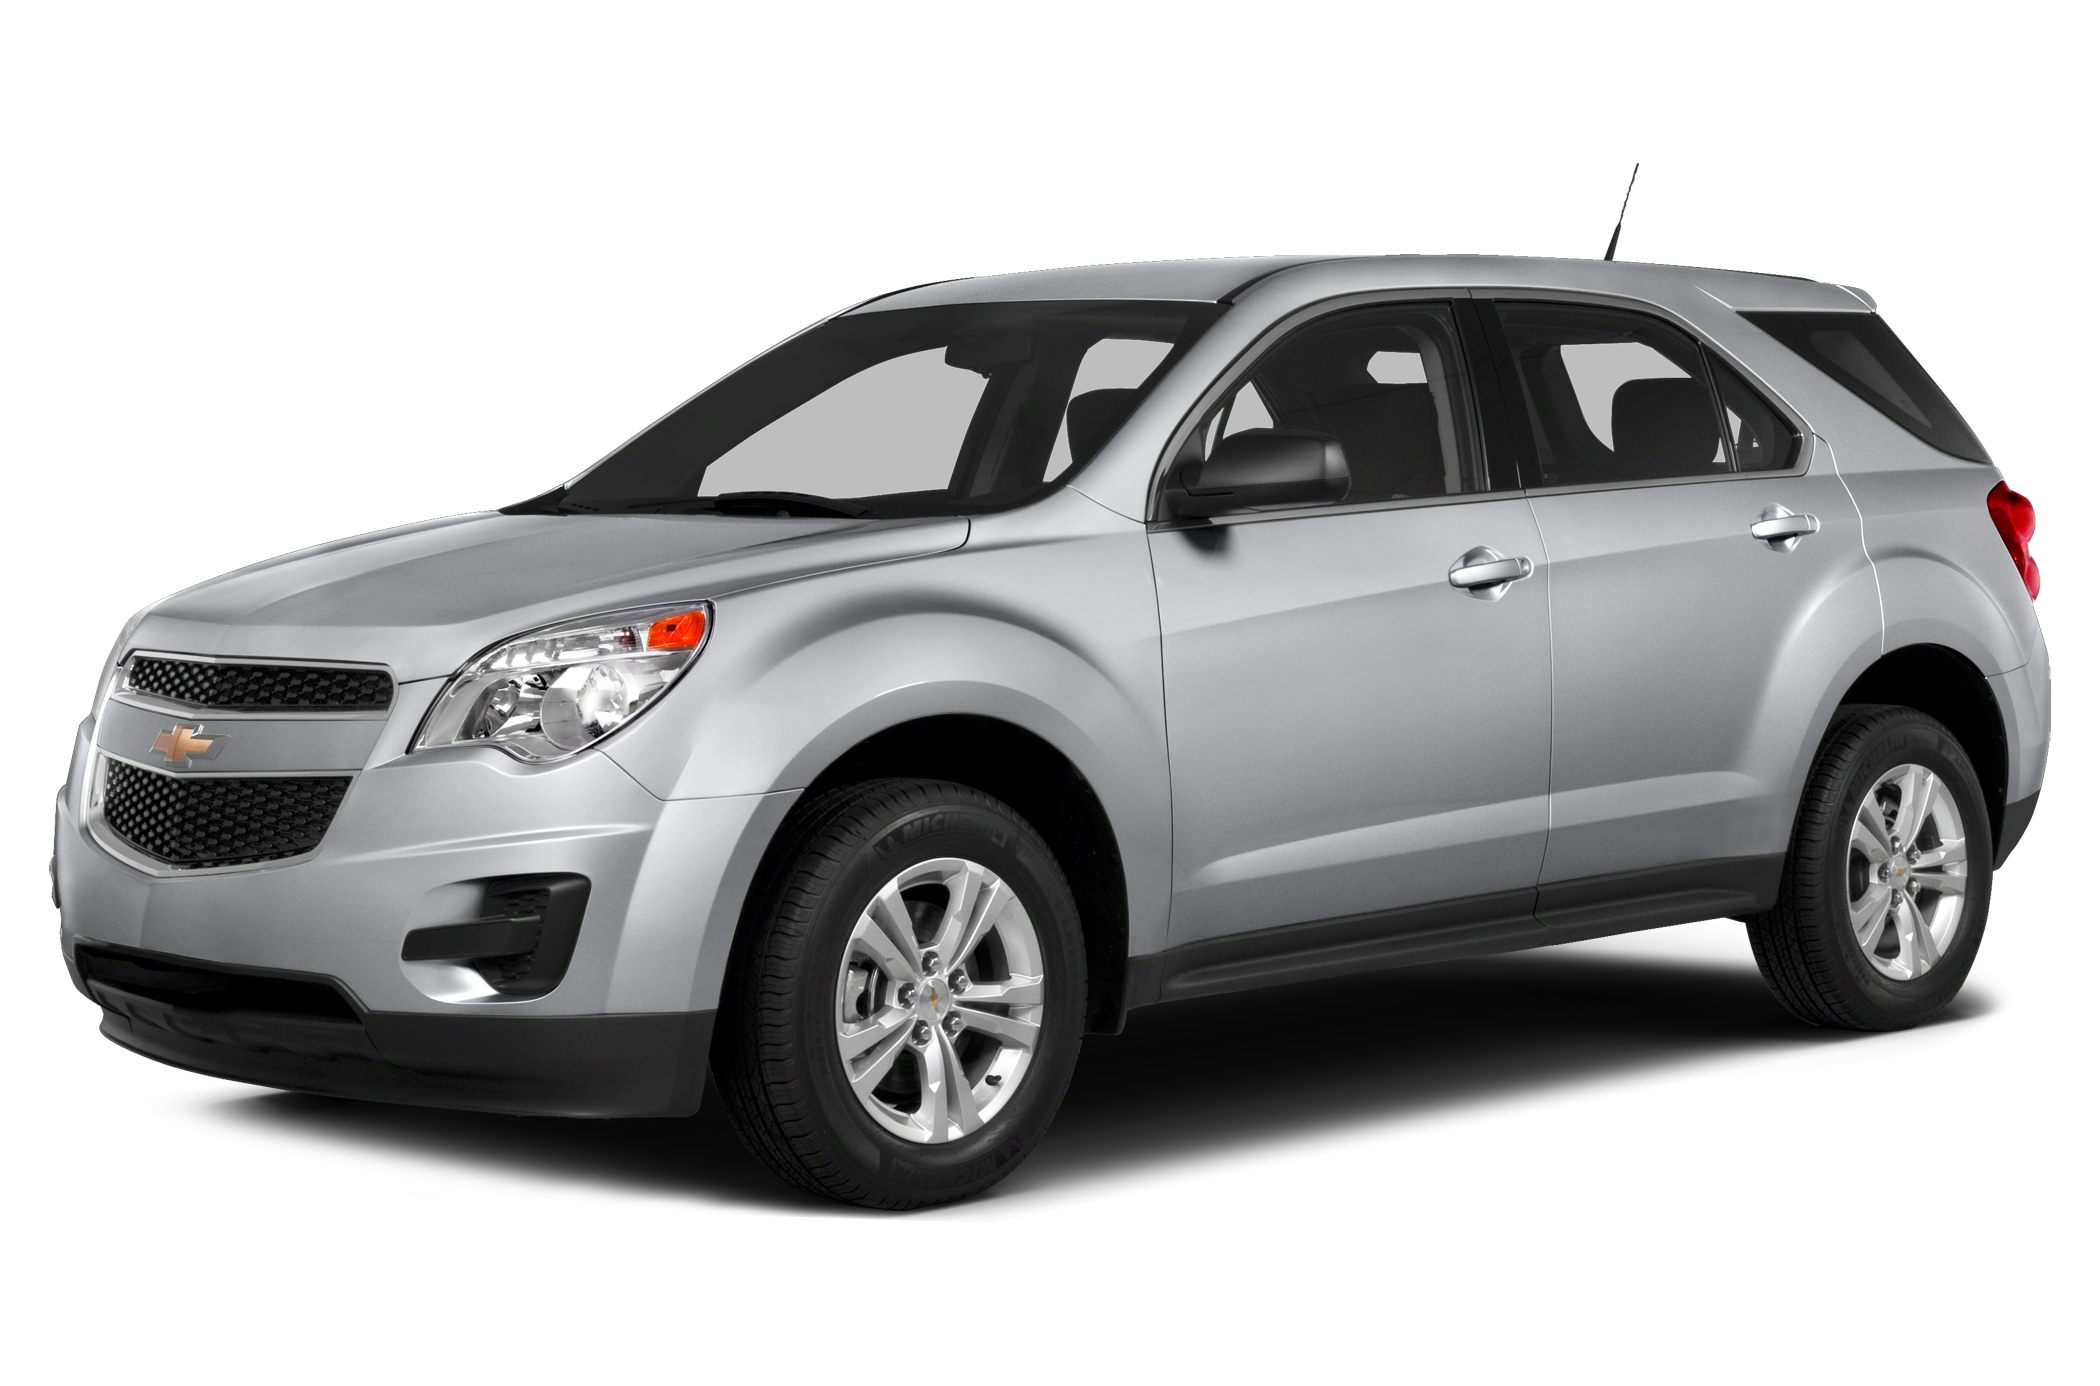 2013 Chevrolet Equinox LS SUV for sale in Chicago for $17,475 with 34,518 miles.